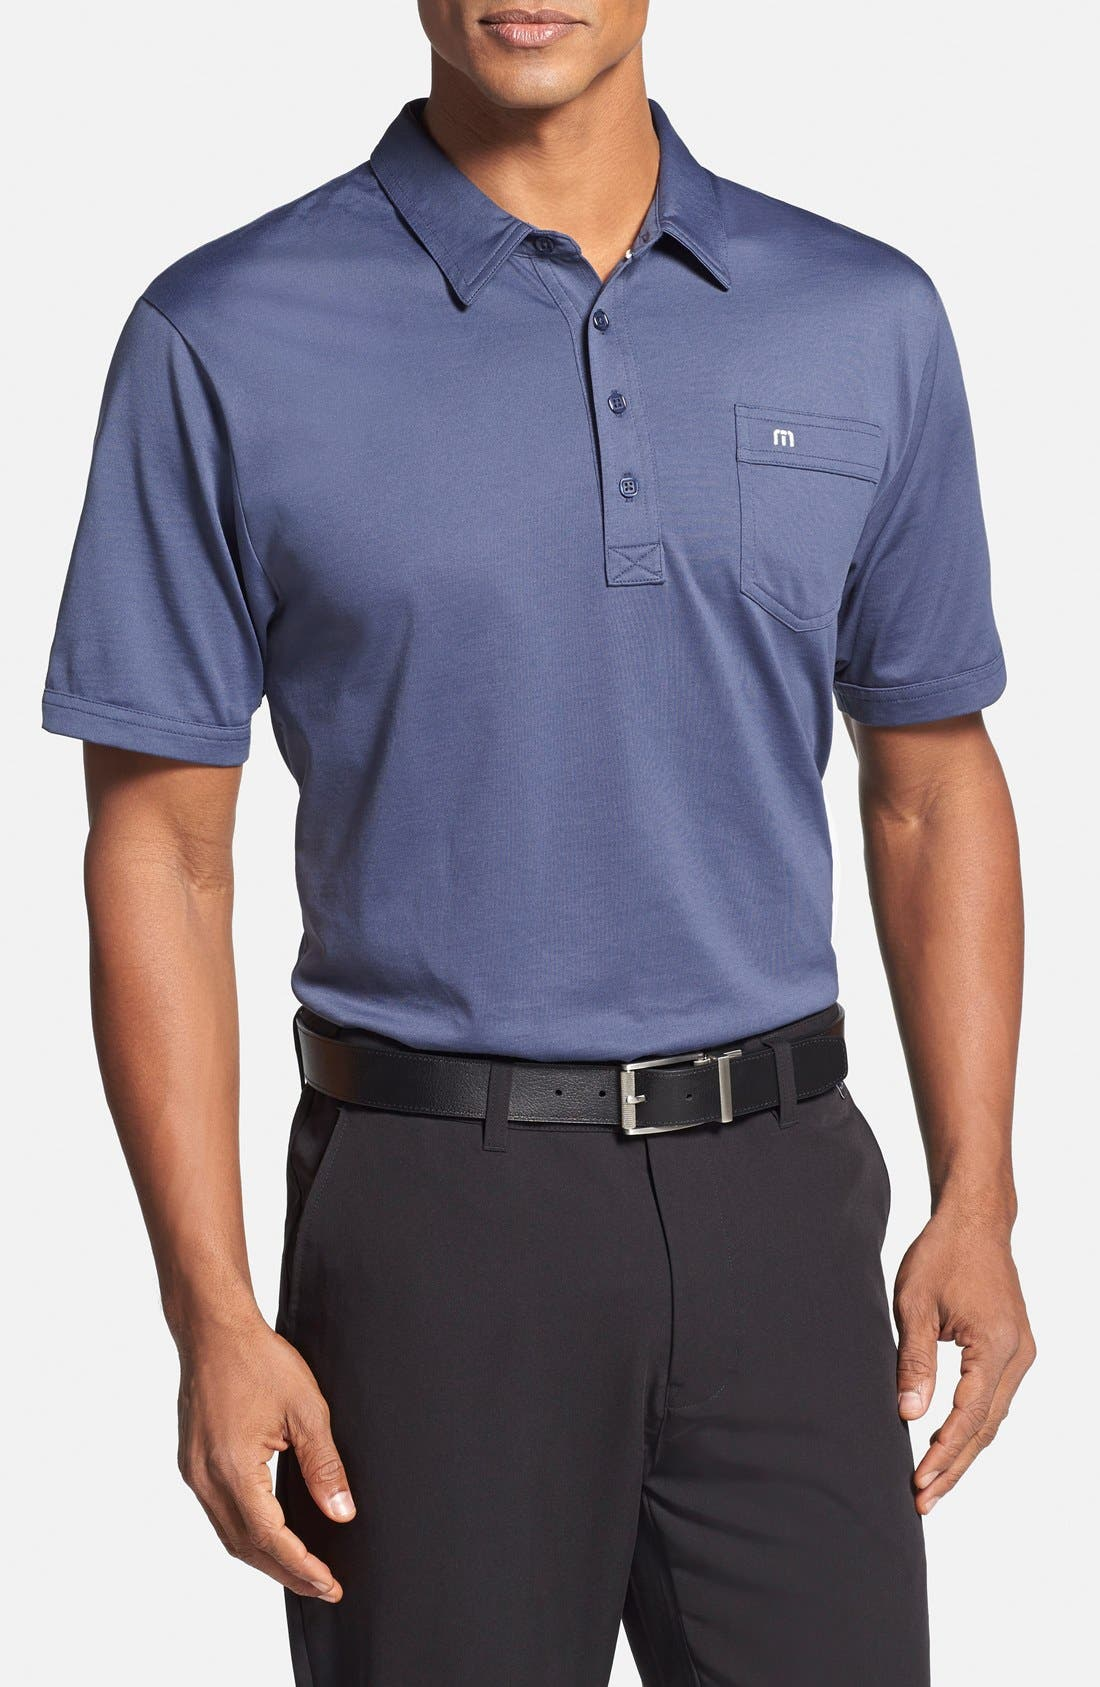 Main Image - Travis Mathew 'OG' Trim Fit Performance Golf Polo